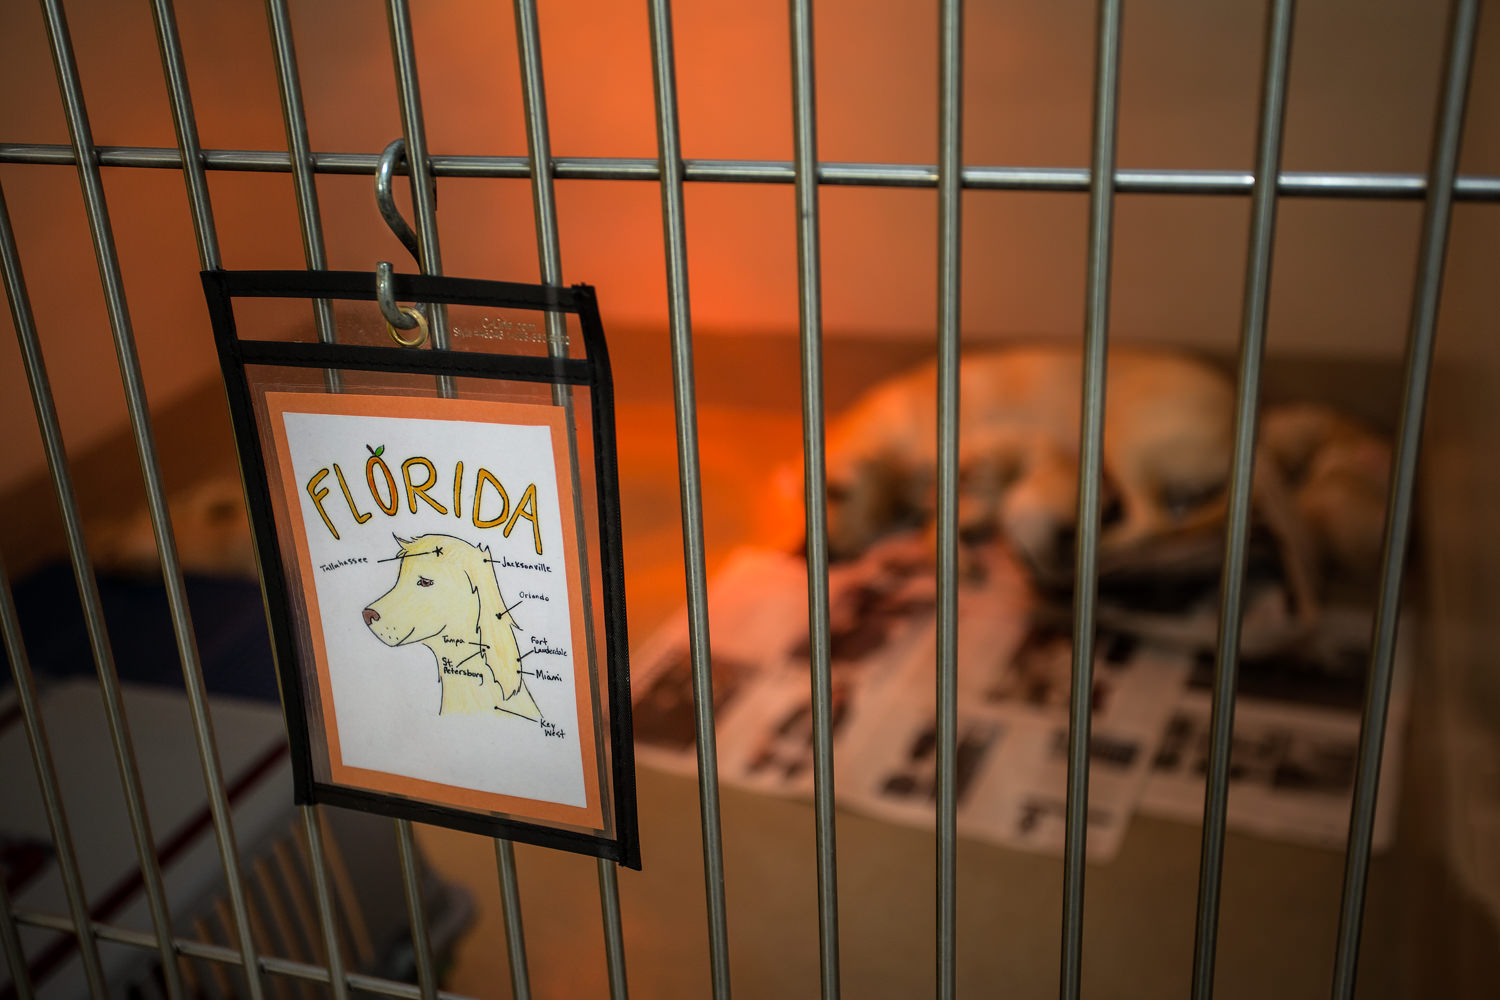 Guiding Eyes brood Florida's whelping kennel name tag.